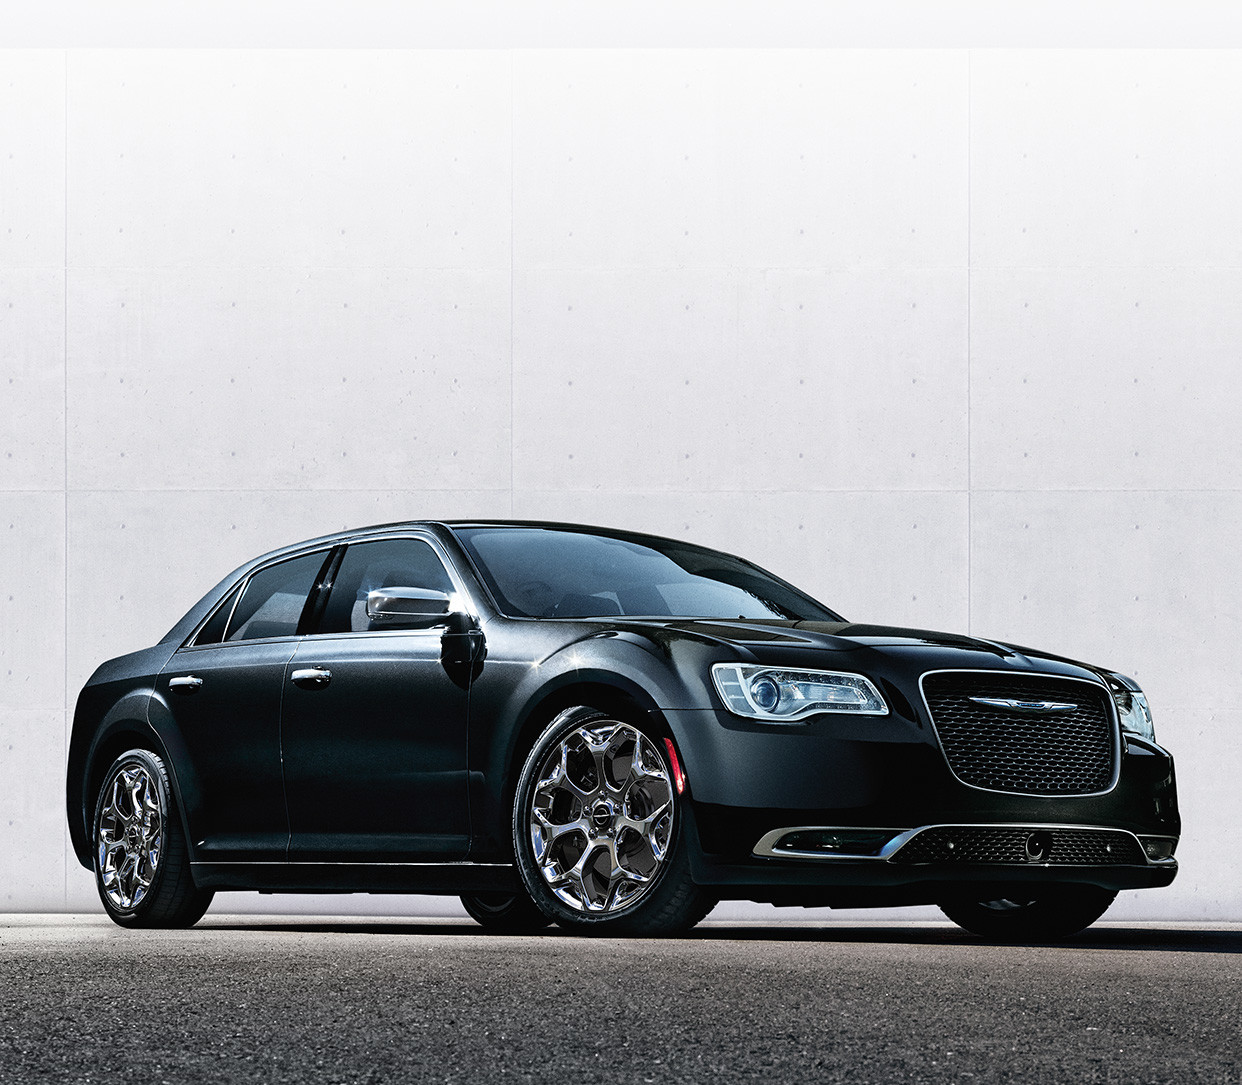 Side view of the black 2020 Chrysler 300 parked on a road in front of white wall